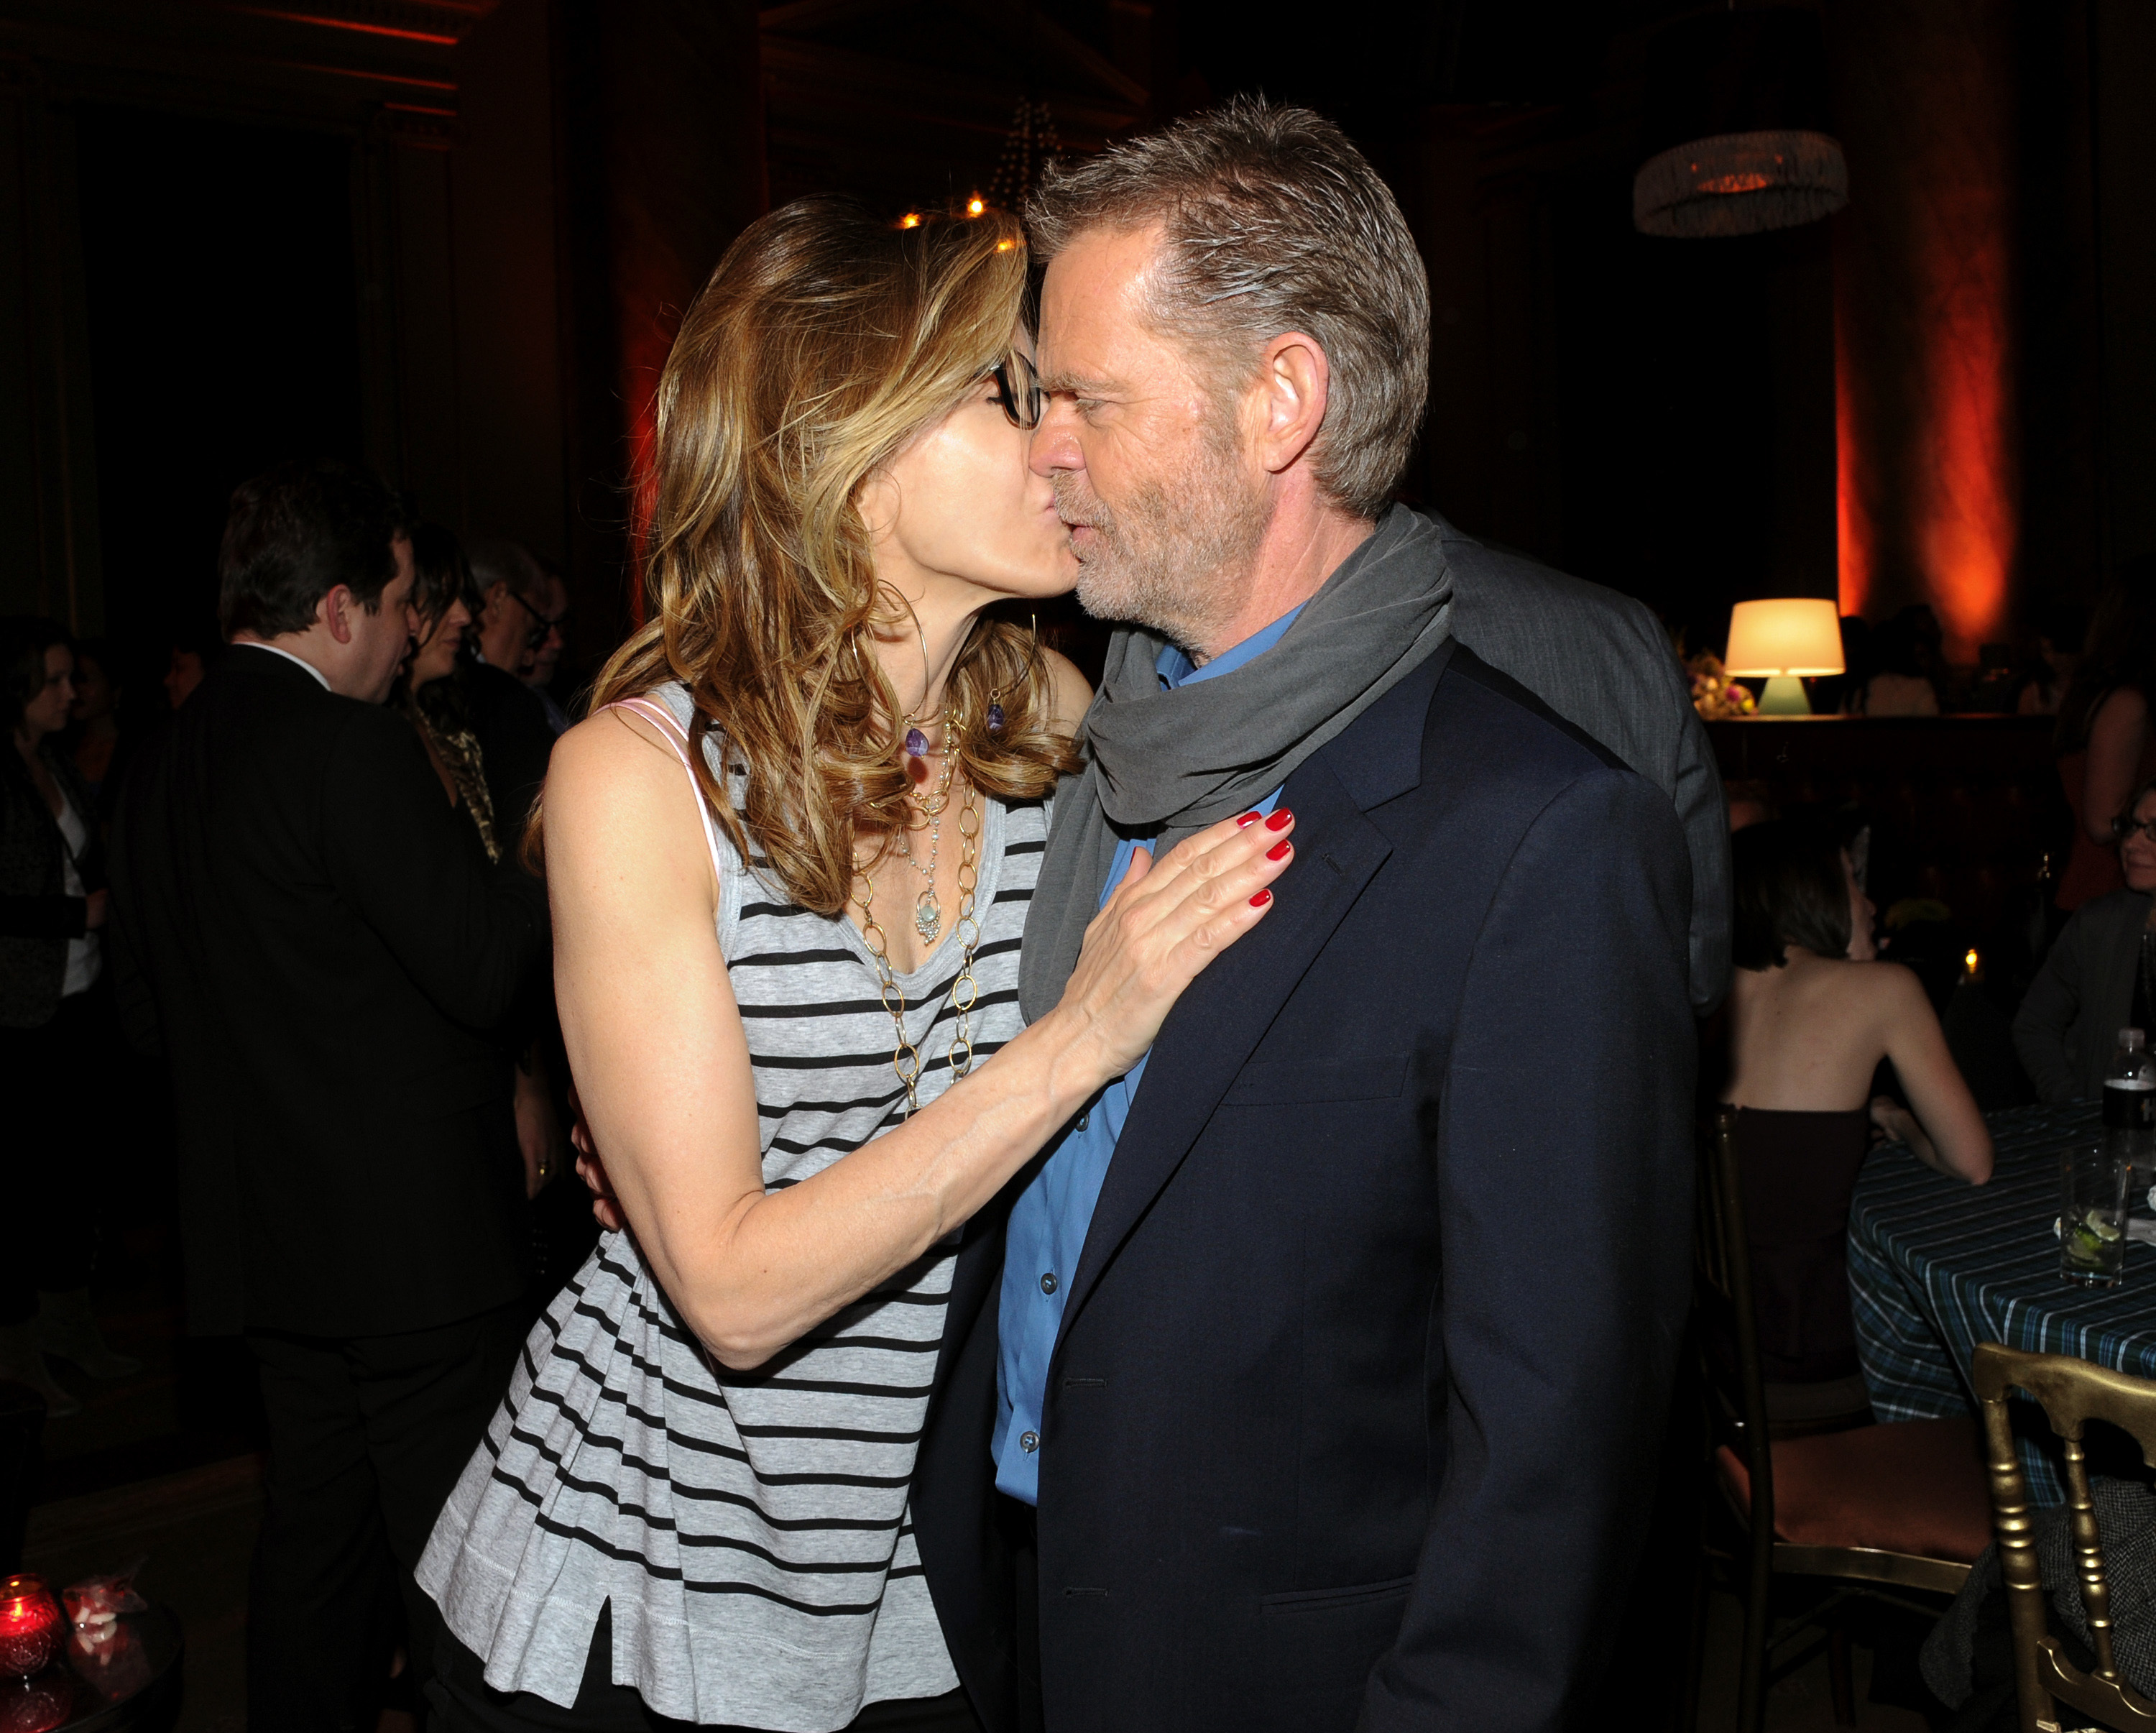 William H. Macy Felicity Huffman kiss